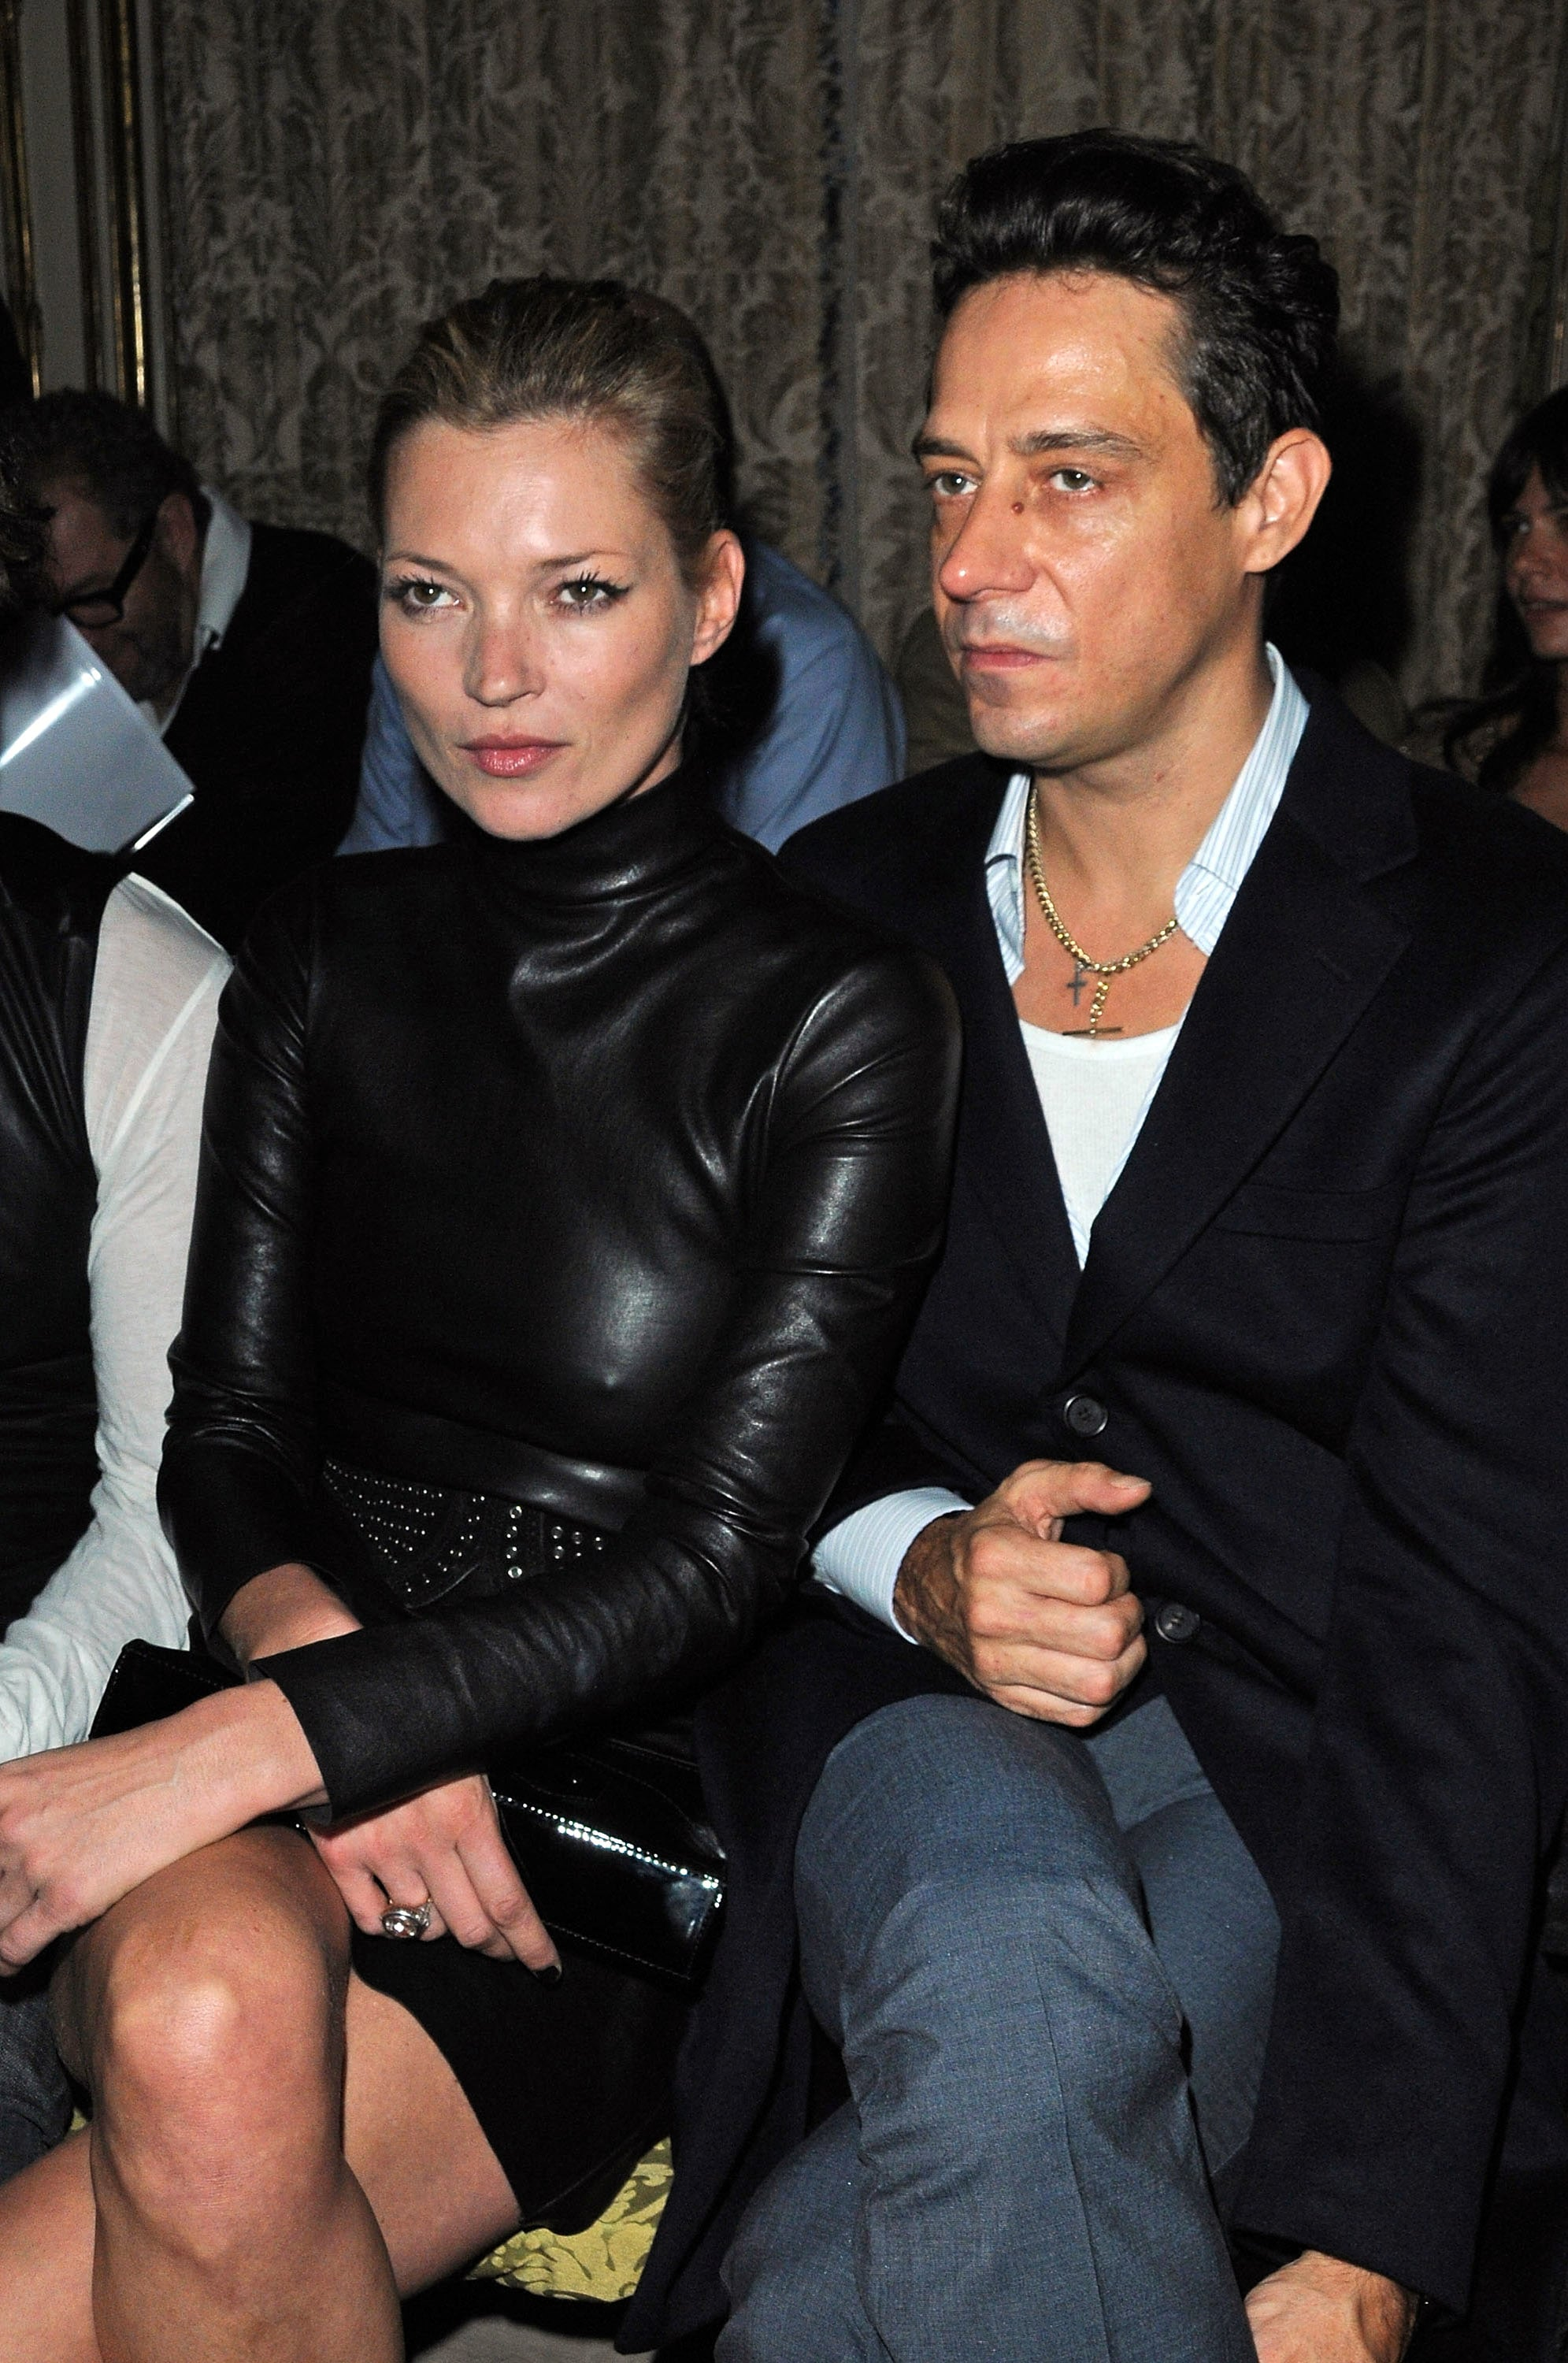 1285d55a1d3 Gallery of Pictures of Kate Moss and Jamie Hince at Miu Miu Show at ...